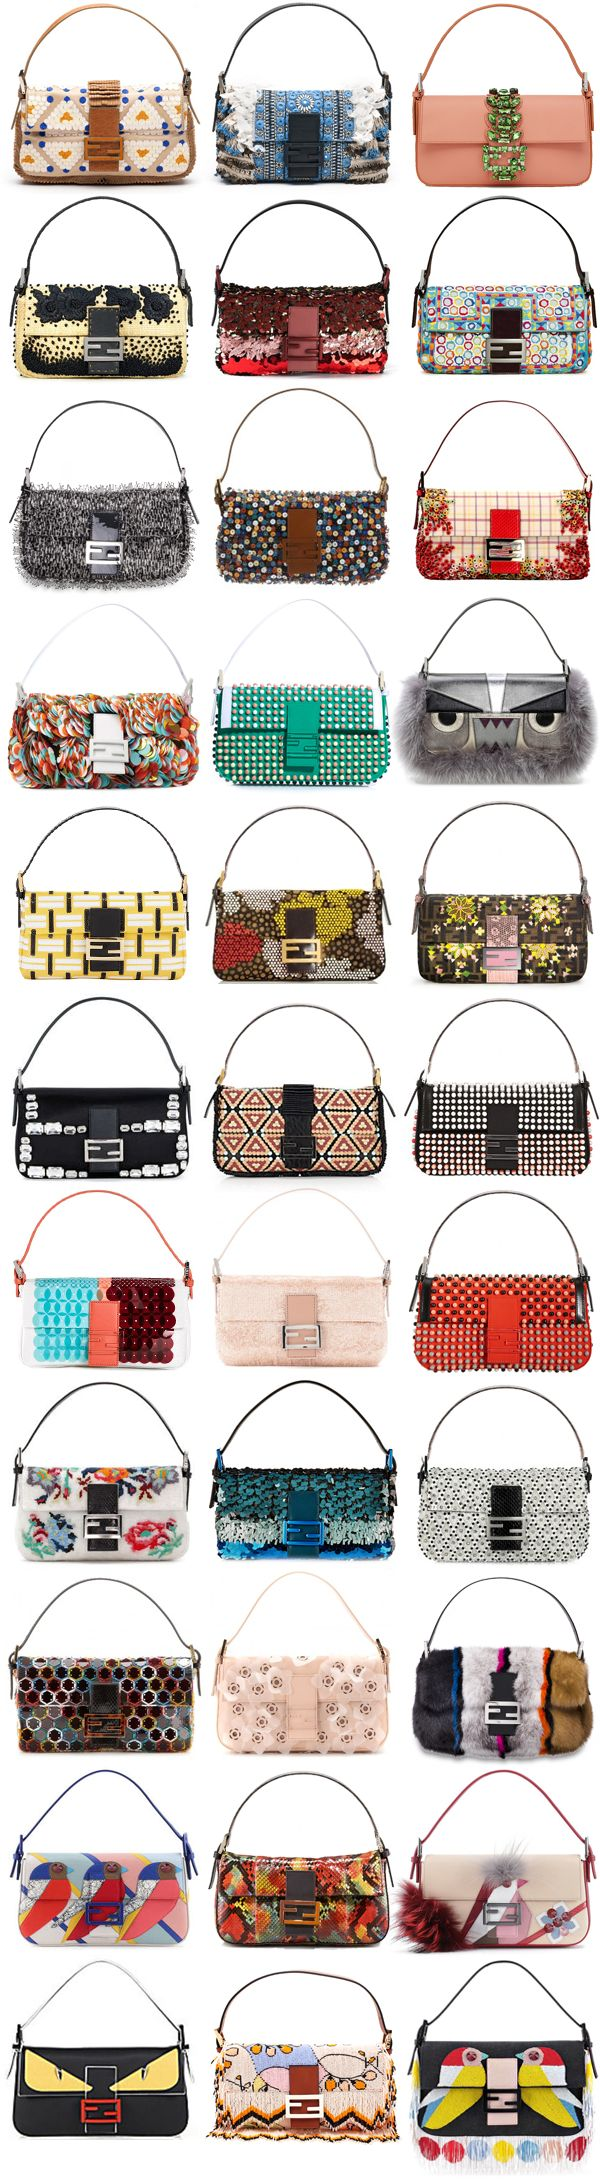 FENDI BAGUETTE // The Perfect Collector's Obsession!